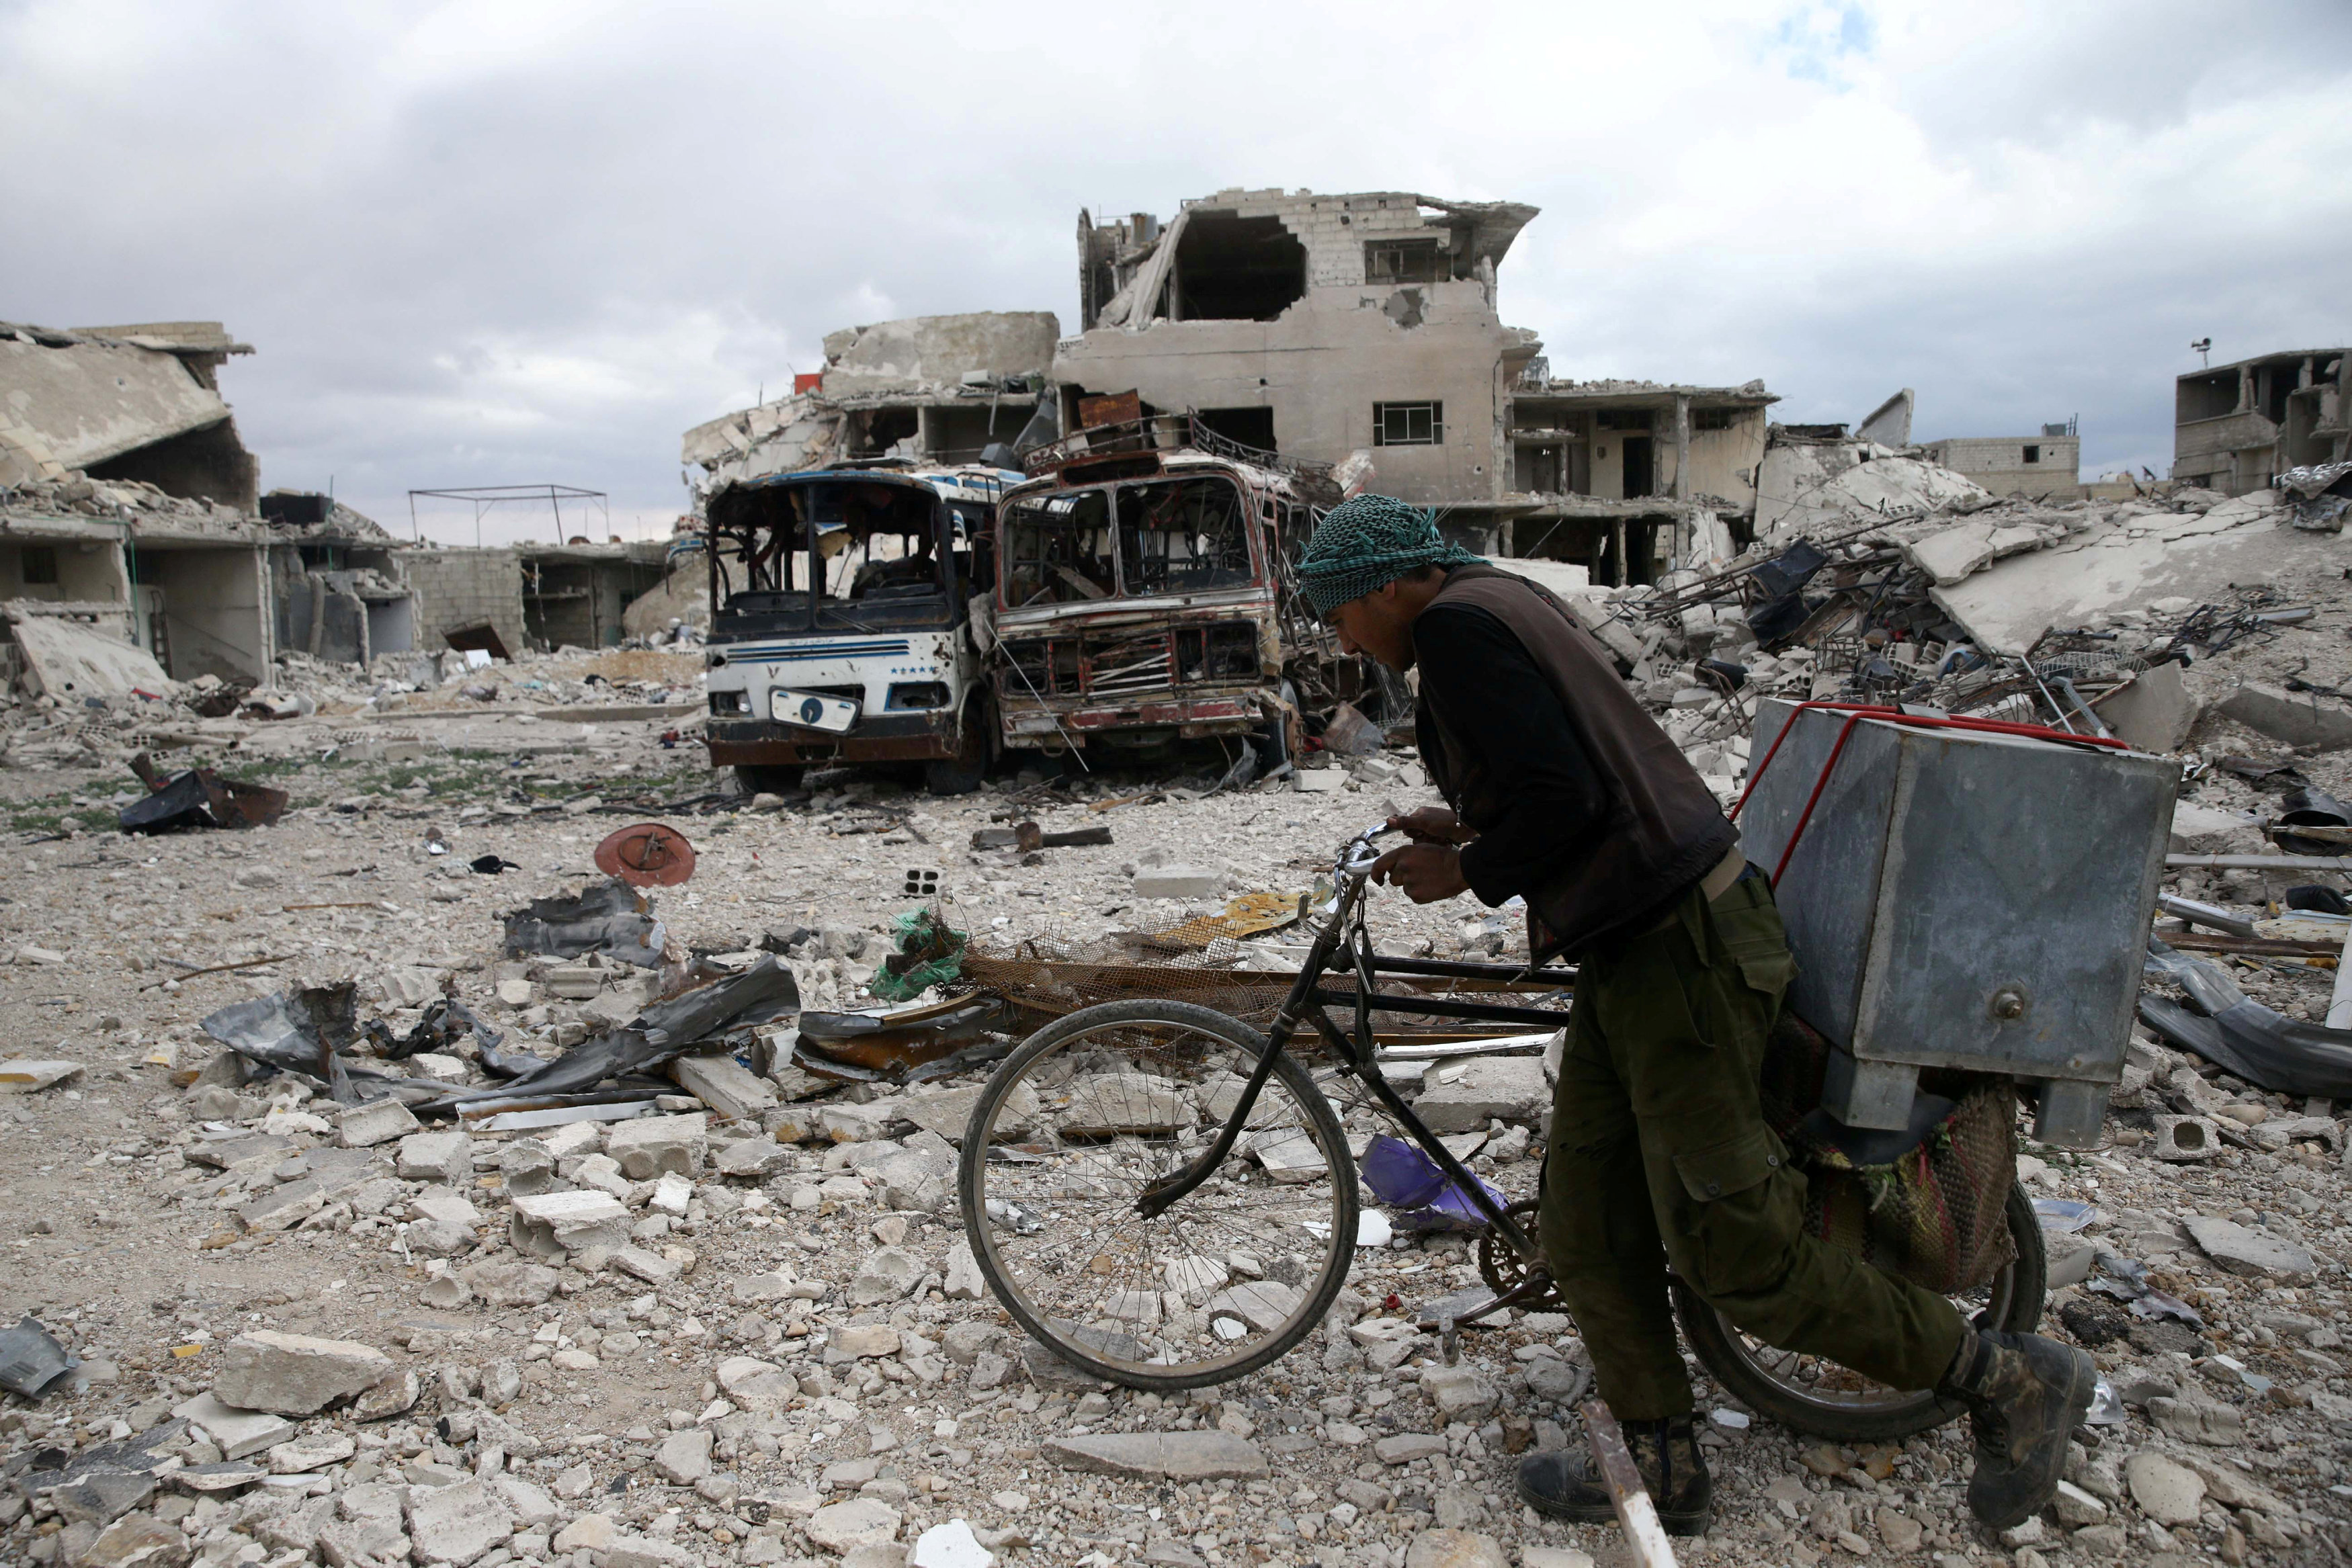 A man walks with his bicycle at a damaged site in the besieged town of Douma, Eastern Ghouta, in Damascus, Syria March 30, 2018. REUTERS/Bassam Khabieh